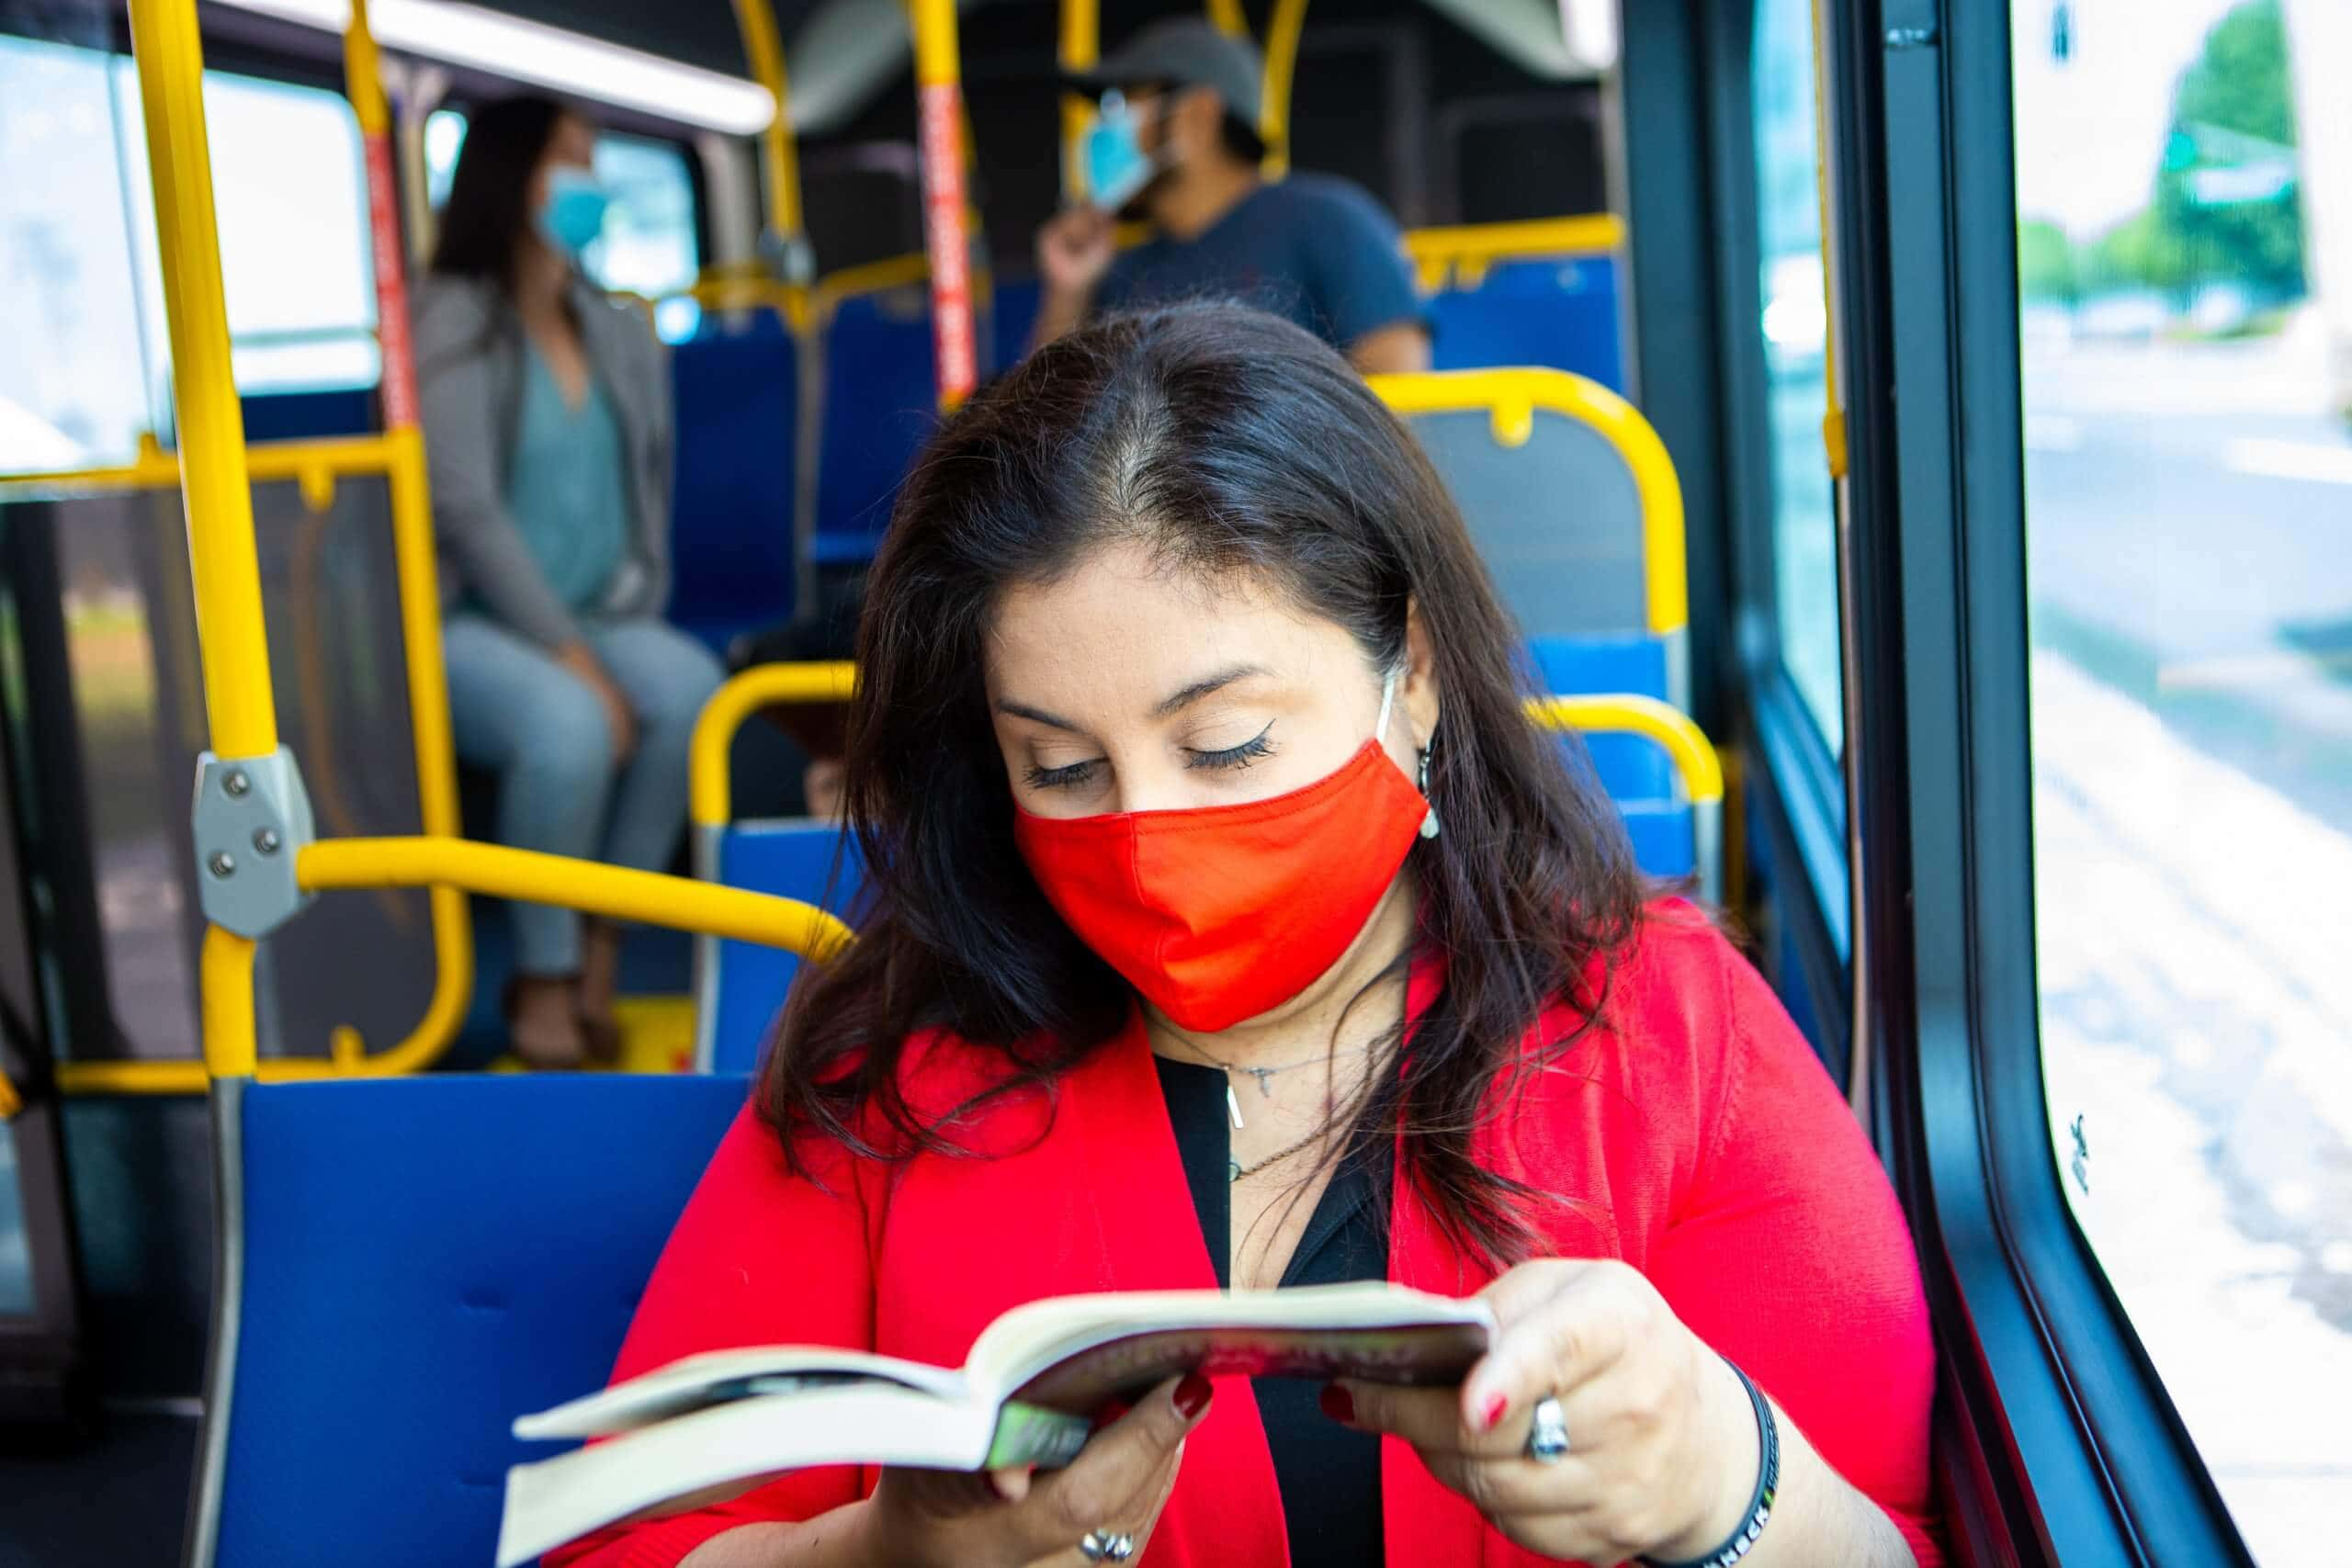 Masked passenger on bus reading book